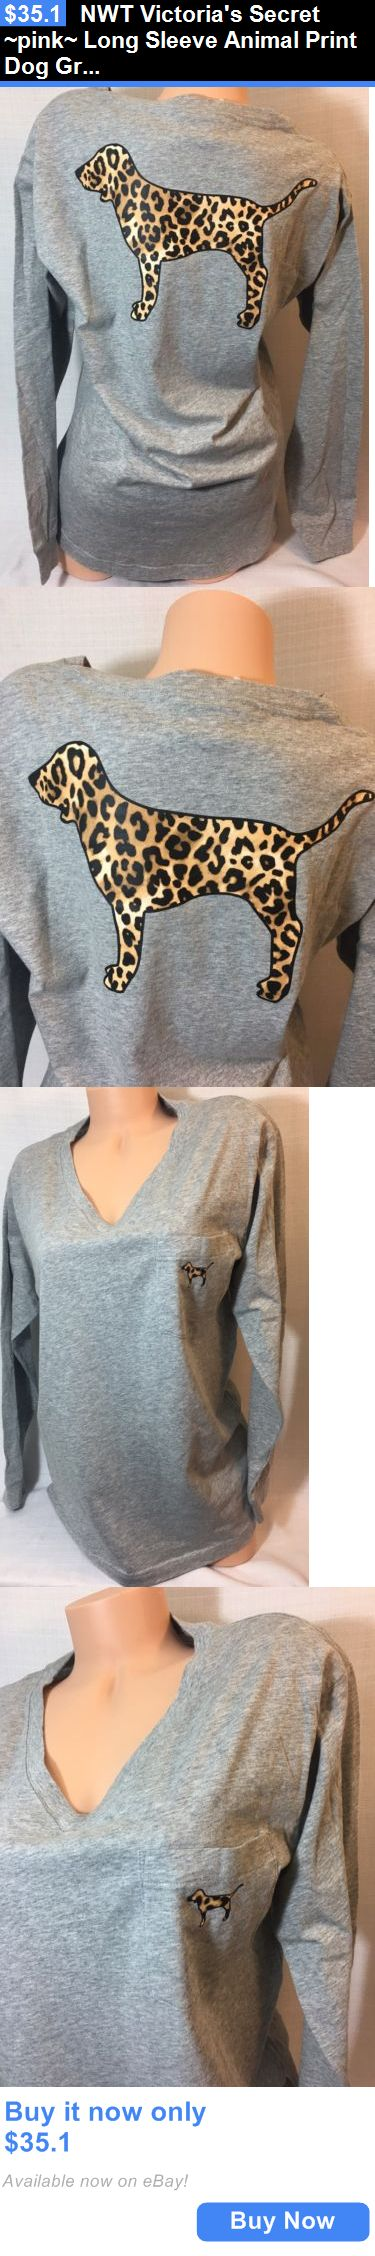 Women T Shirts: Nwt Victorias Secret ~Pink~ Long Sleeve Animal Print Dog Graphic Campus Tee A BUY IT NOW ONLY: $35.1